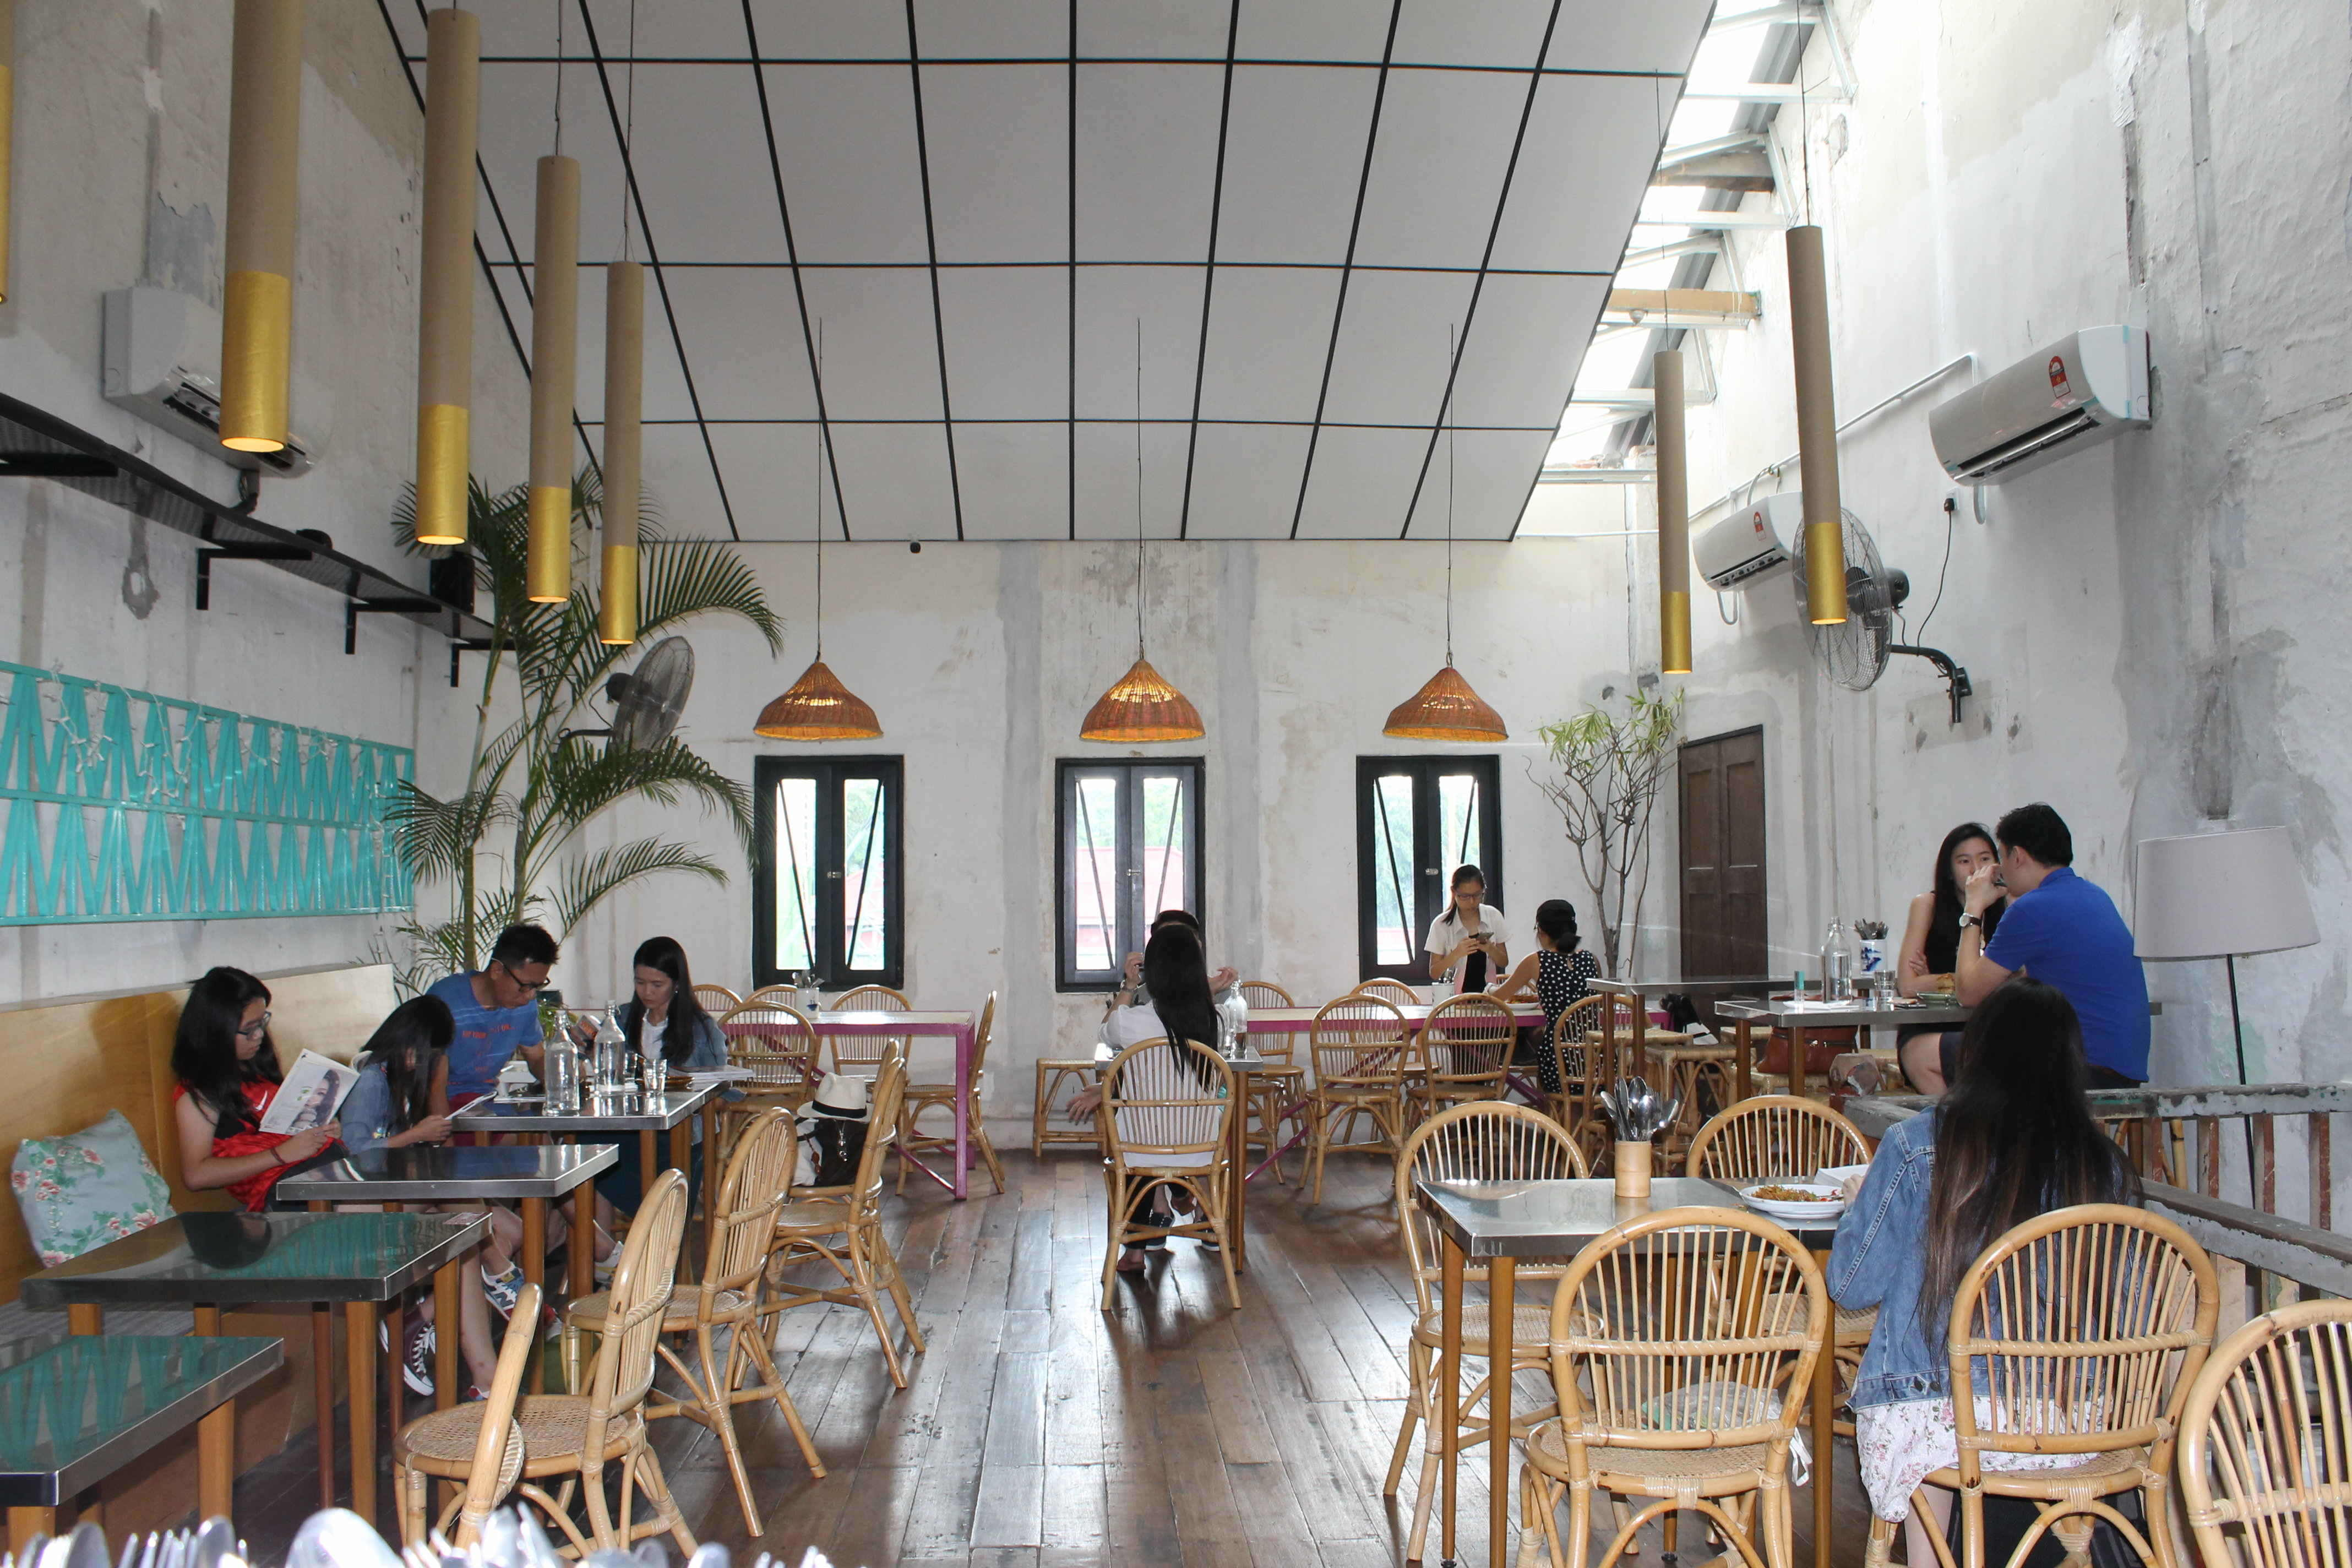 merchants lane may look old and a little worn out but the owners used this trait as the focal point of the whole cafe and created a rustic yet vibrant